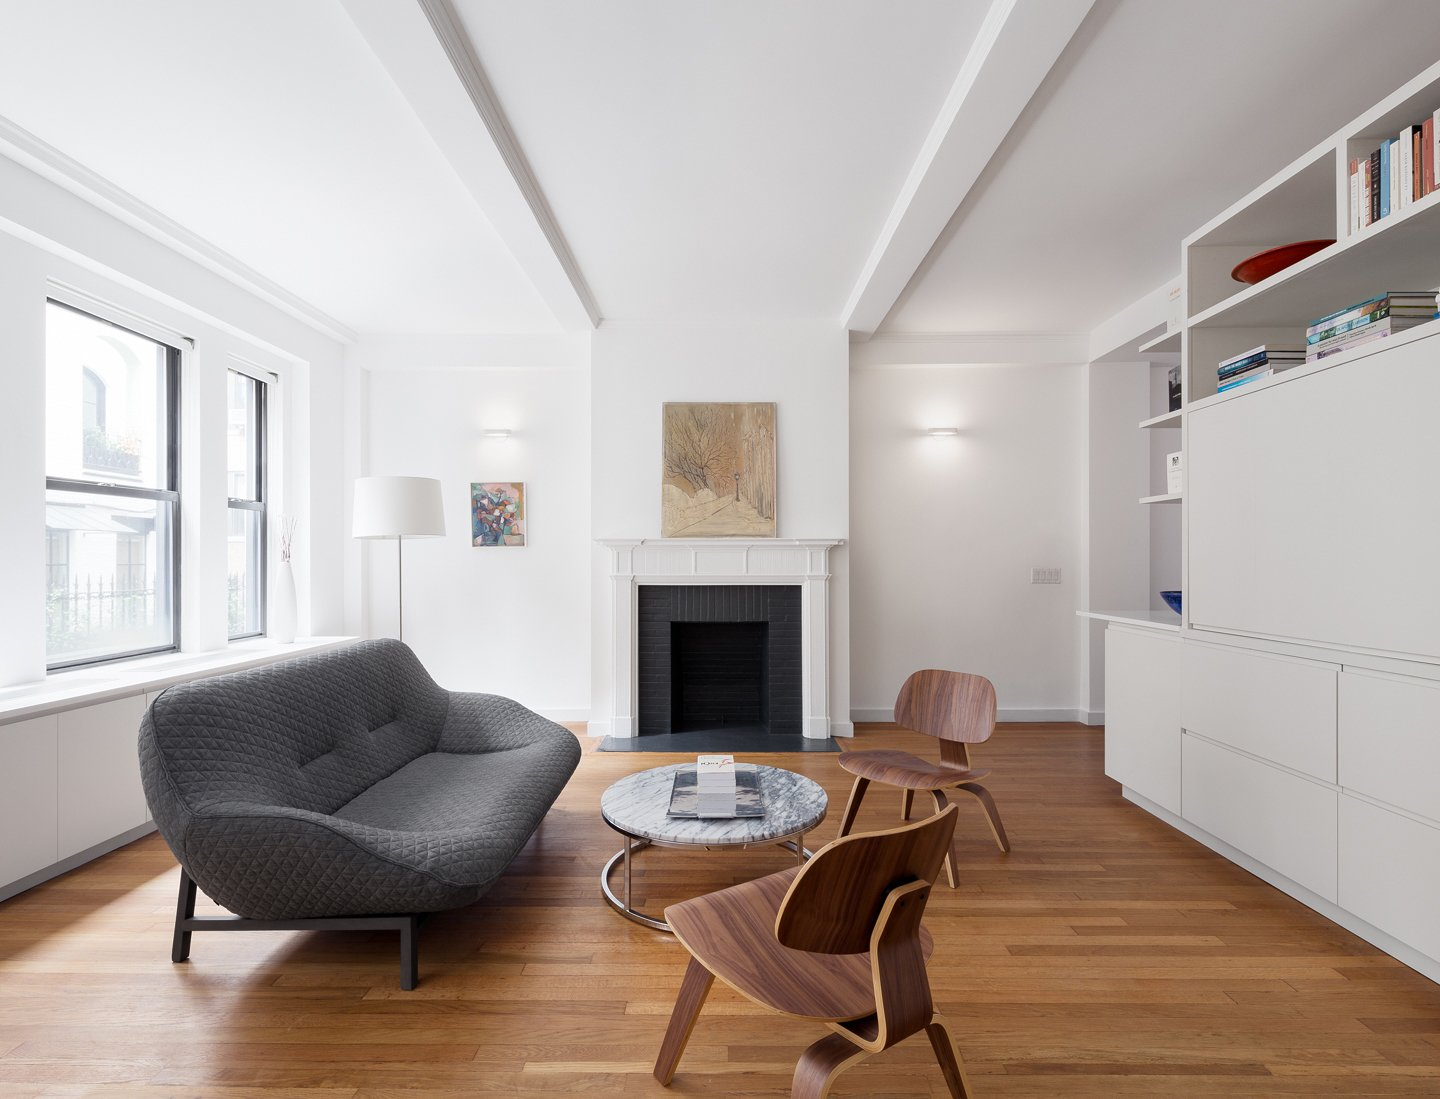 The original fireplace was restored and highlighted as the anchor to the living spaces.  Prewar Modern Upgrade by kane architecture and urban design